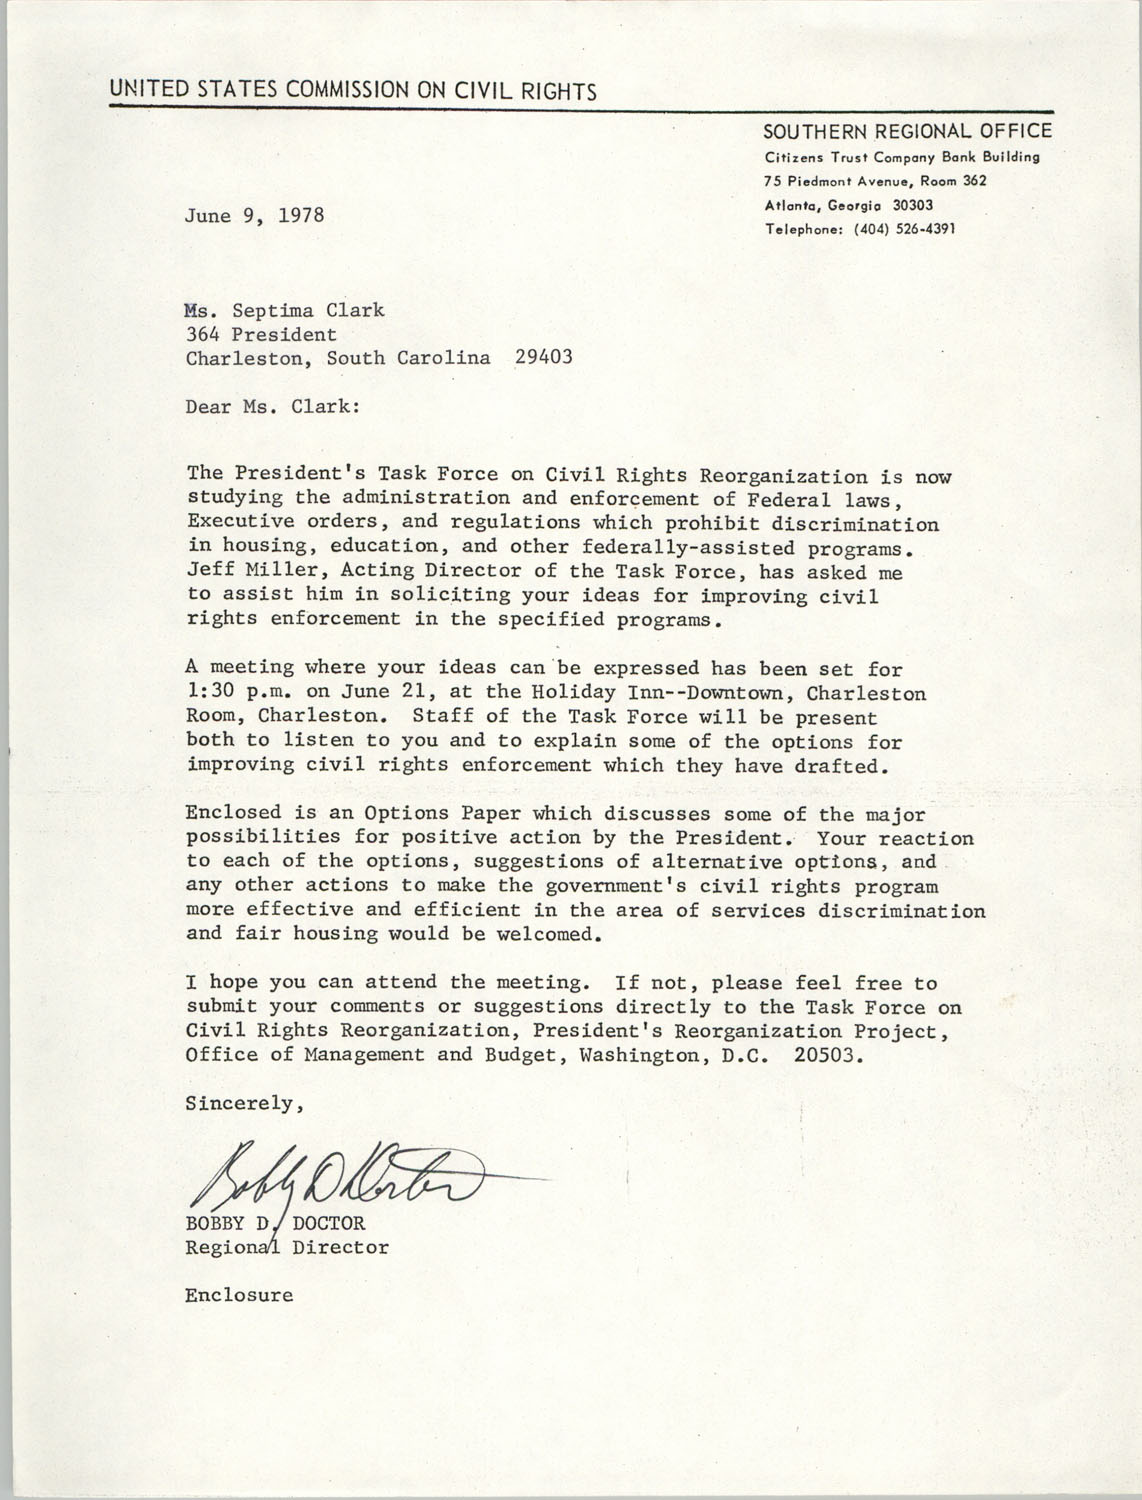 Memorandum from Bobby D. Doctor to Septima P. Clark, June 9, 1978